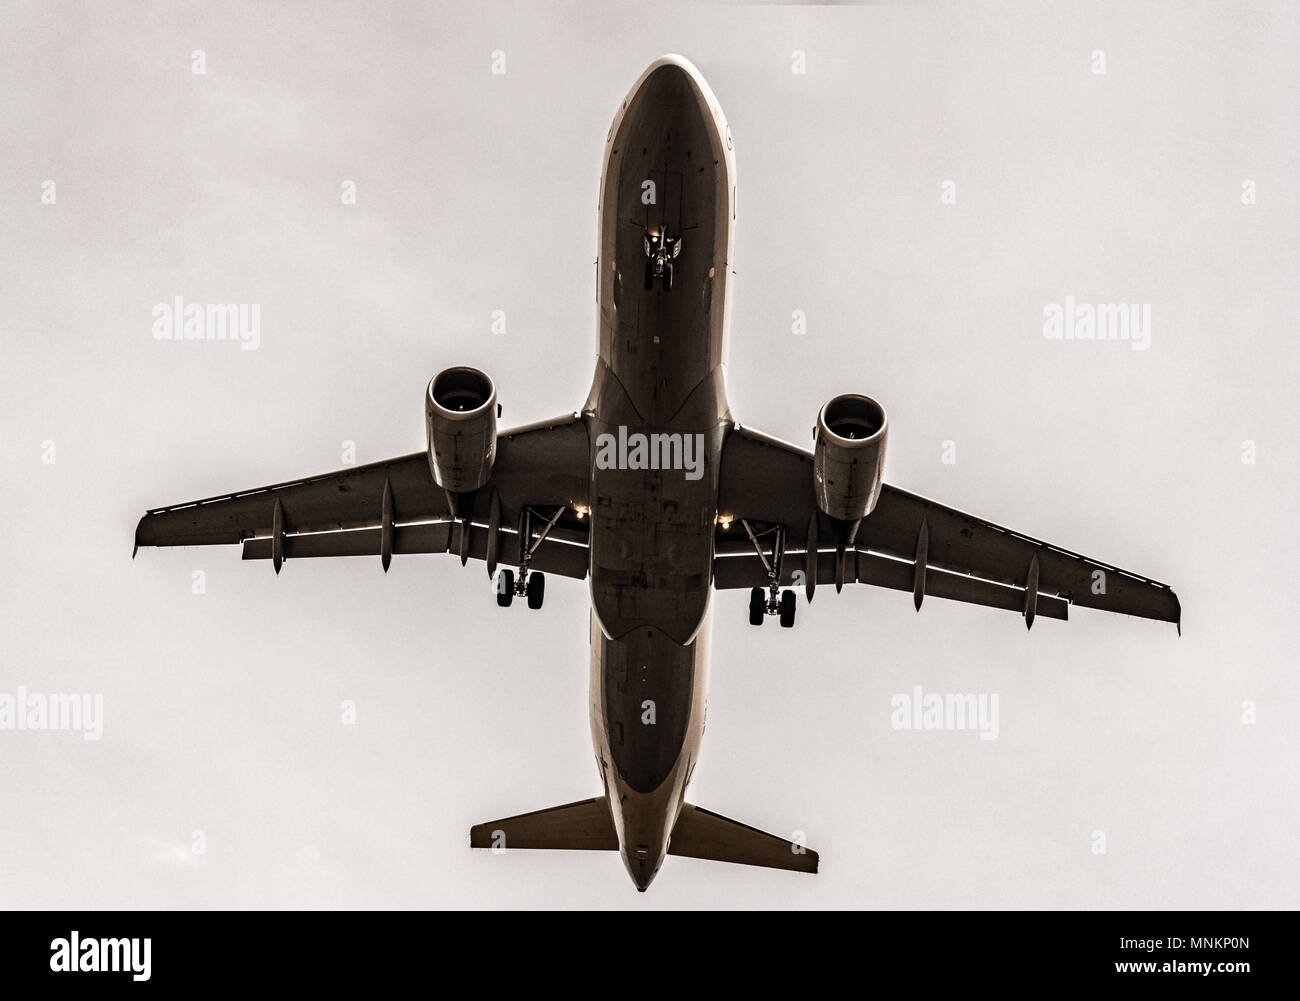 Airplane, Aircraft bottom, flying, take-off, landing - Stock Image